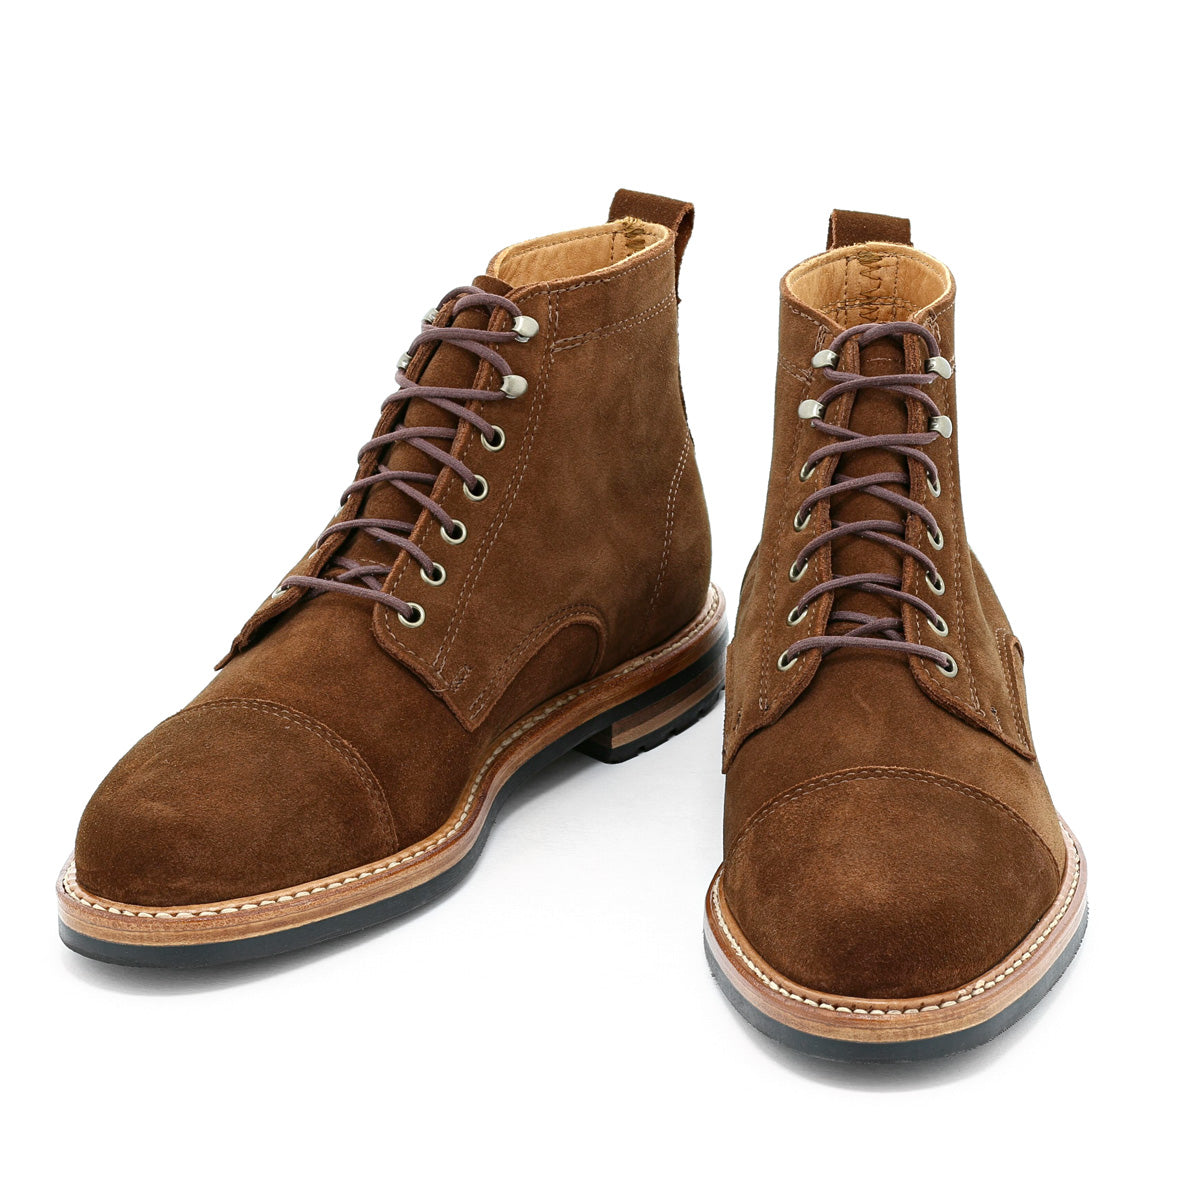 Byron Boot - Snuff Suede